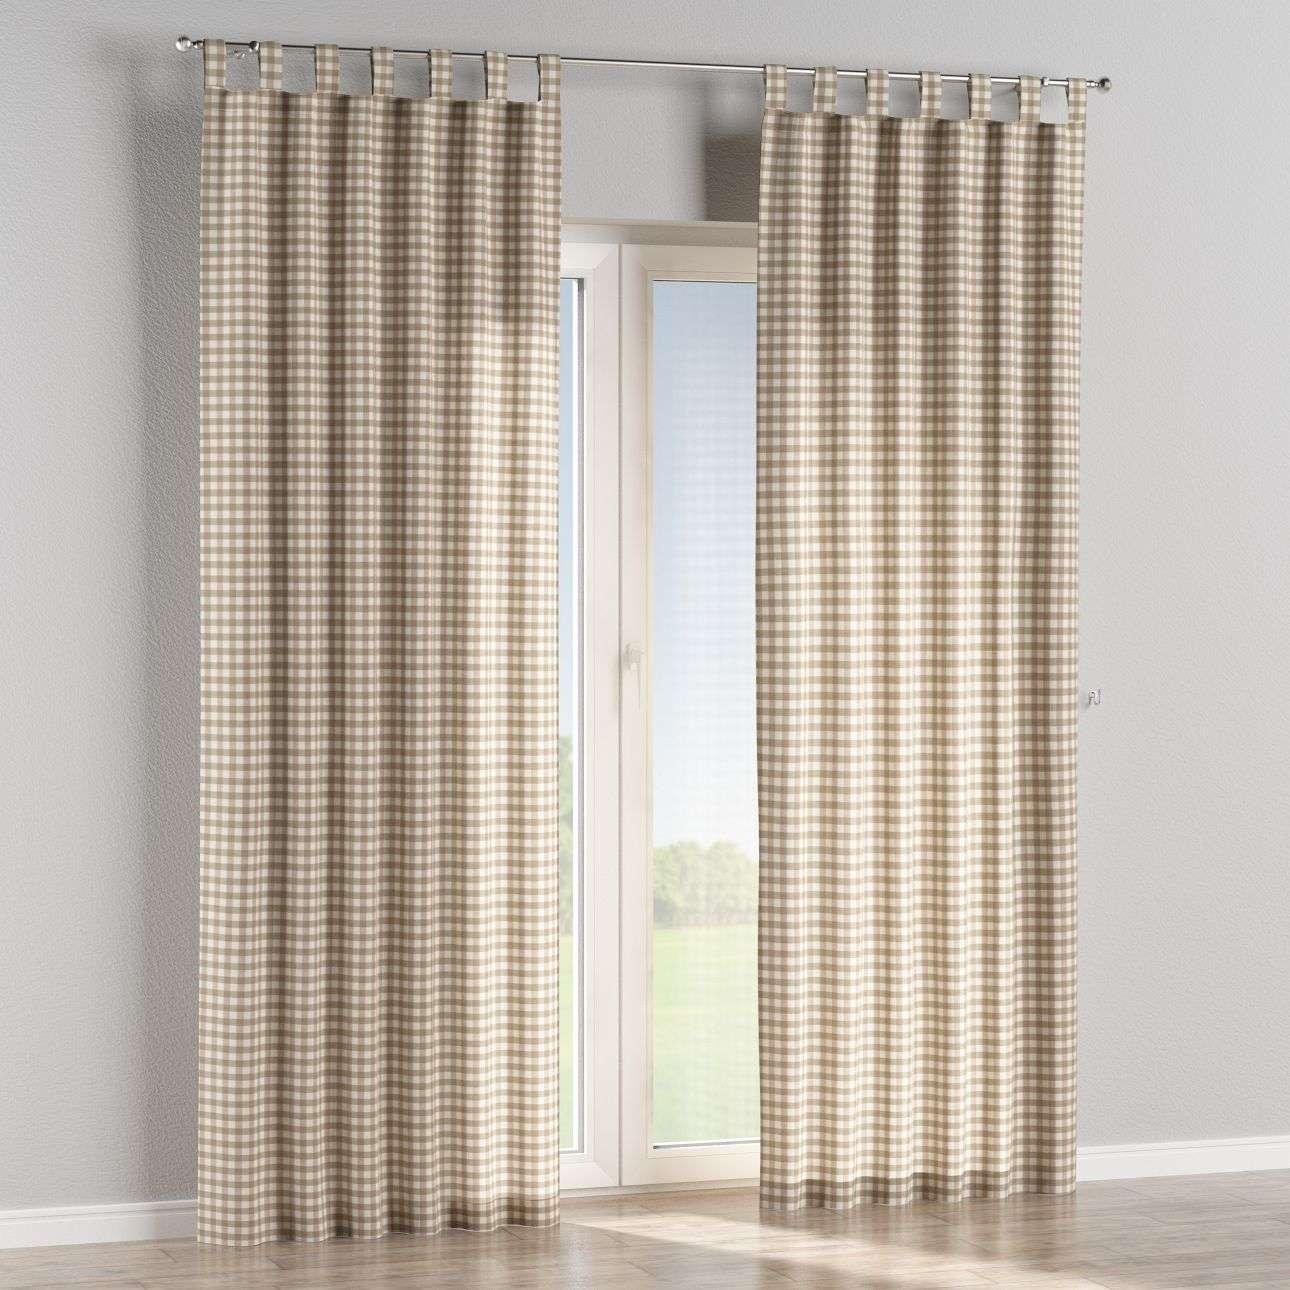 Tab top curtains in collection Quadro, fabric: 136-06